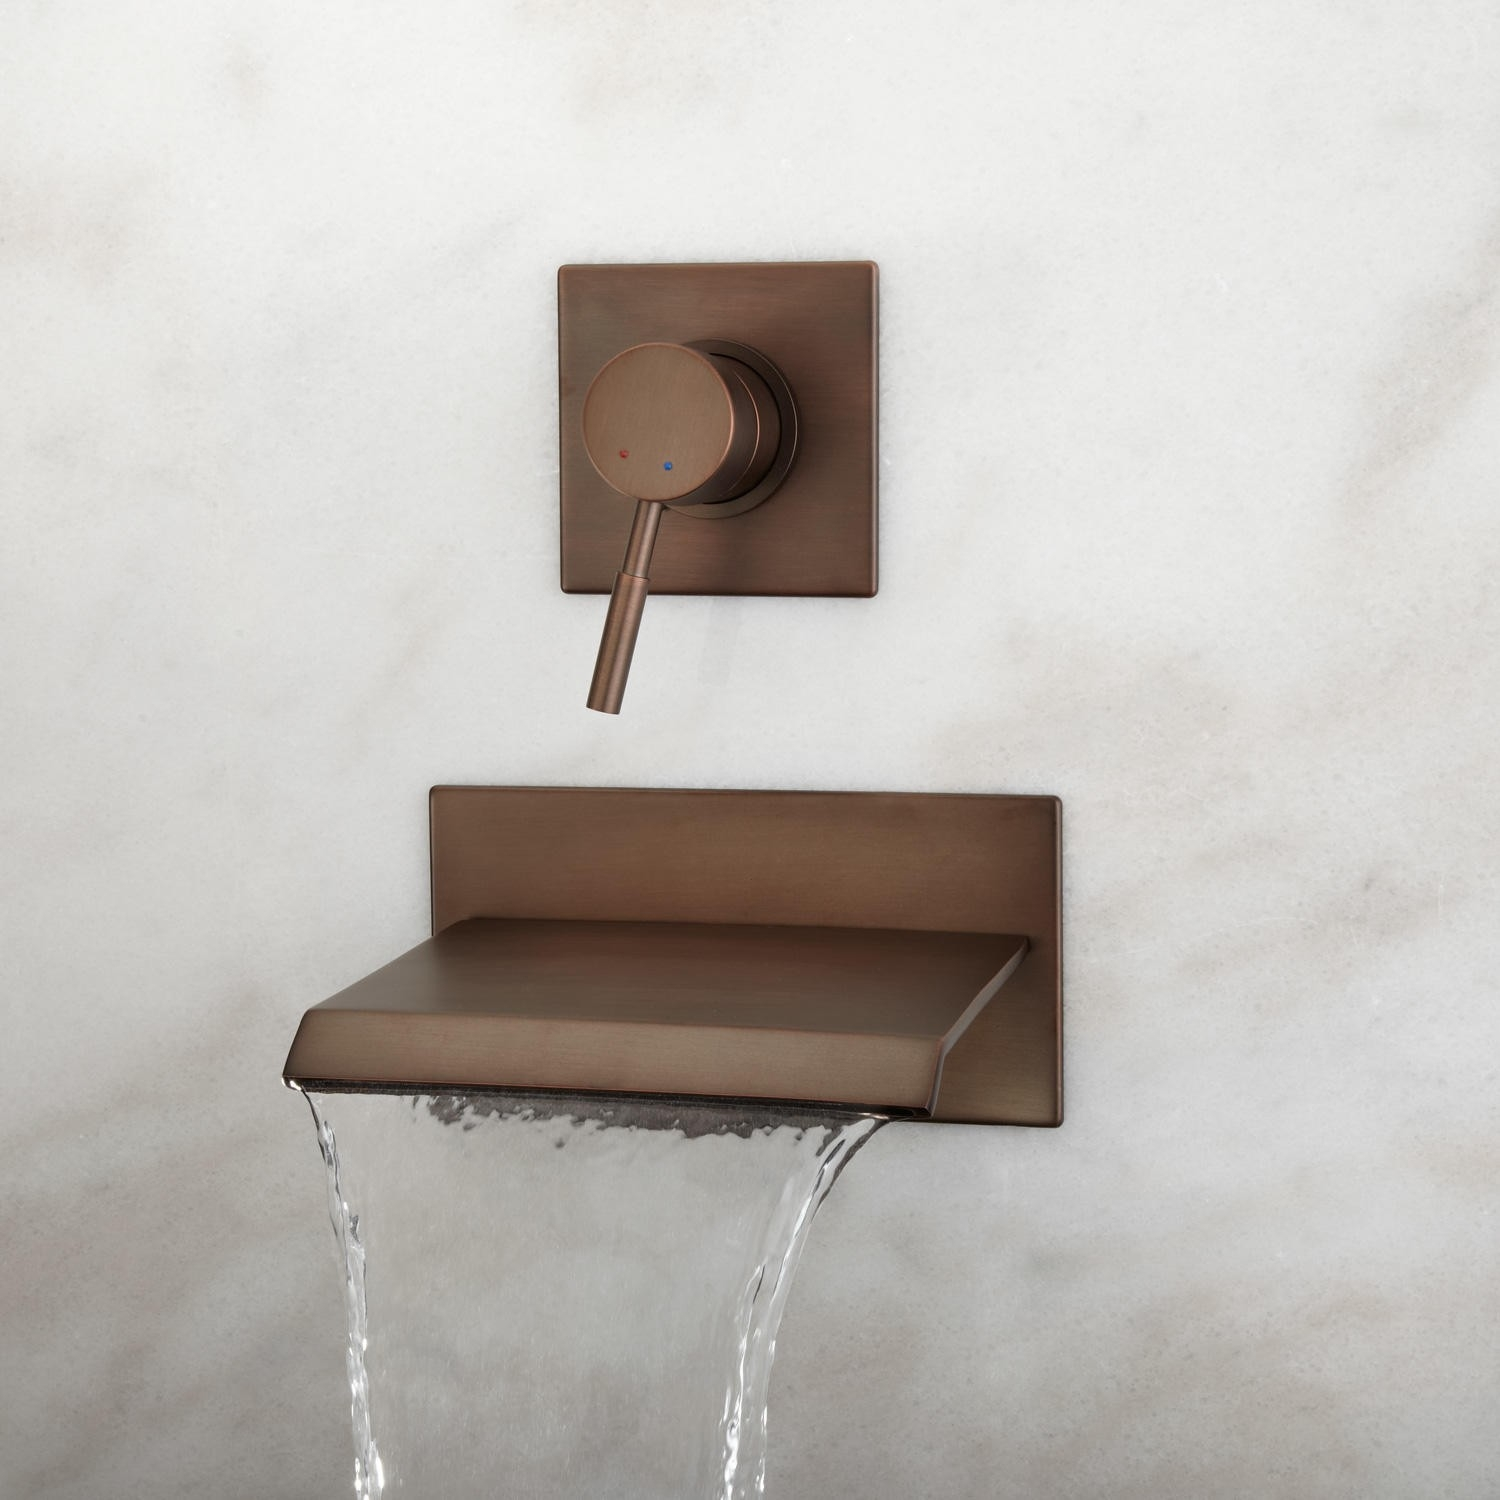 Ideas, wall mounted waterfall faucets for tubs wall mounted waterfall faucets for tubs bathroom fabulous waterfall faucet for bathroom 1500 x 1500  .